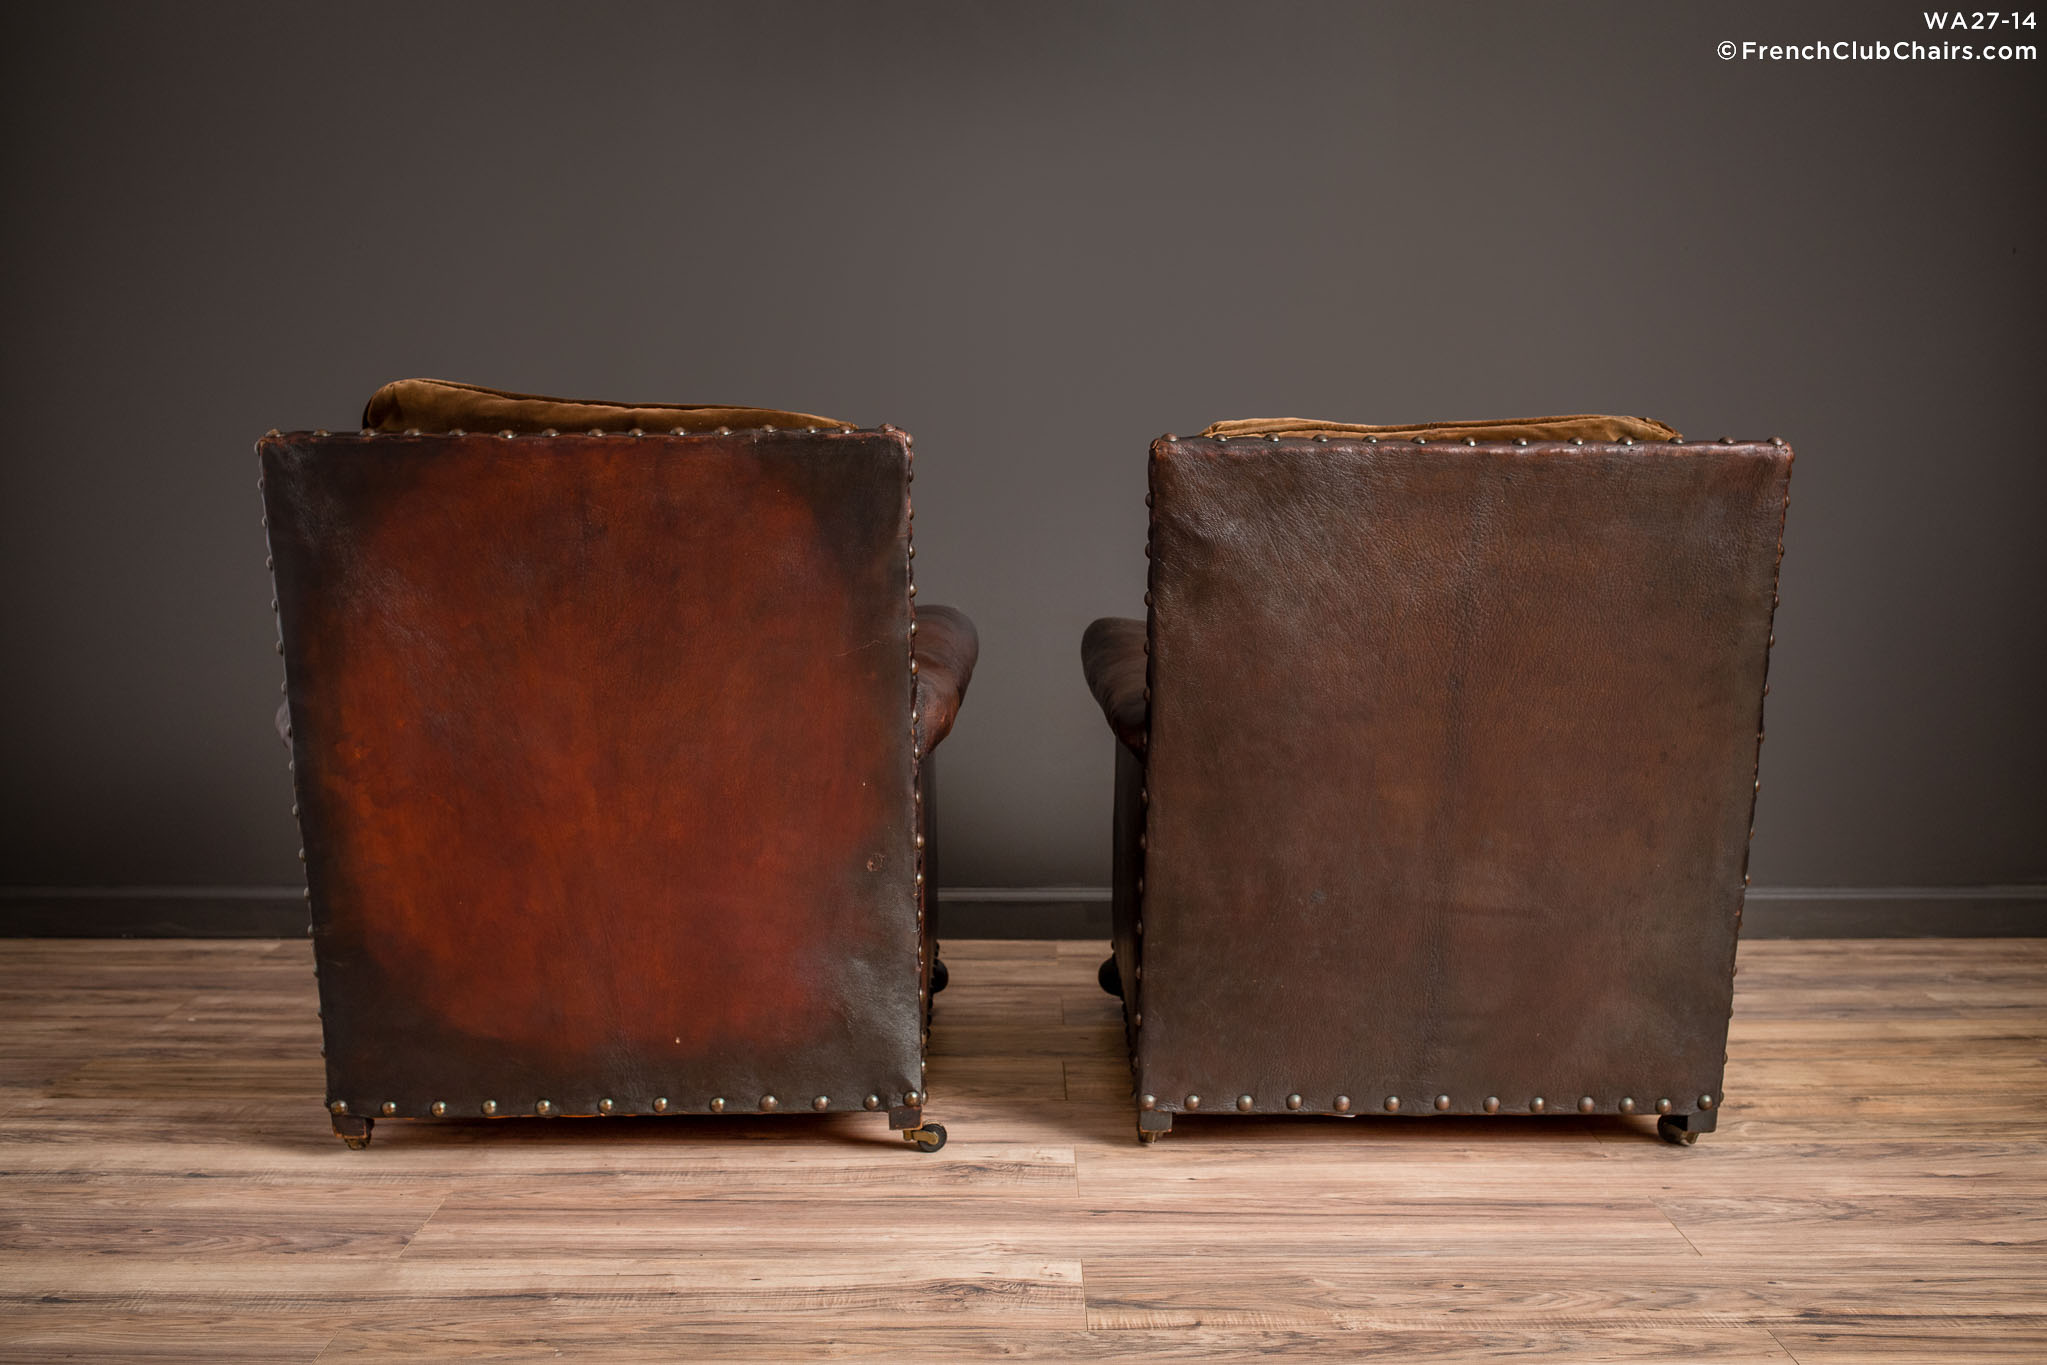 WA_27-14_Ile_de_St_Louis_Nailed_Square_Pair_R_2BK-v01-williams-antiks-leather-french-club-chair-wa_fcccom